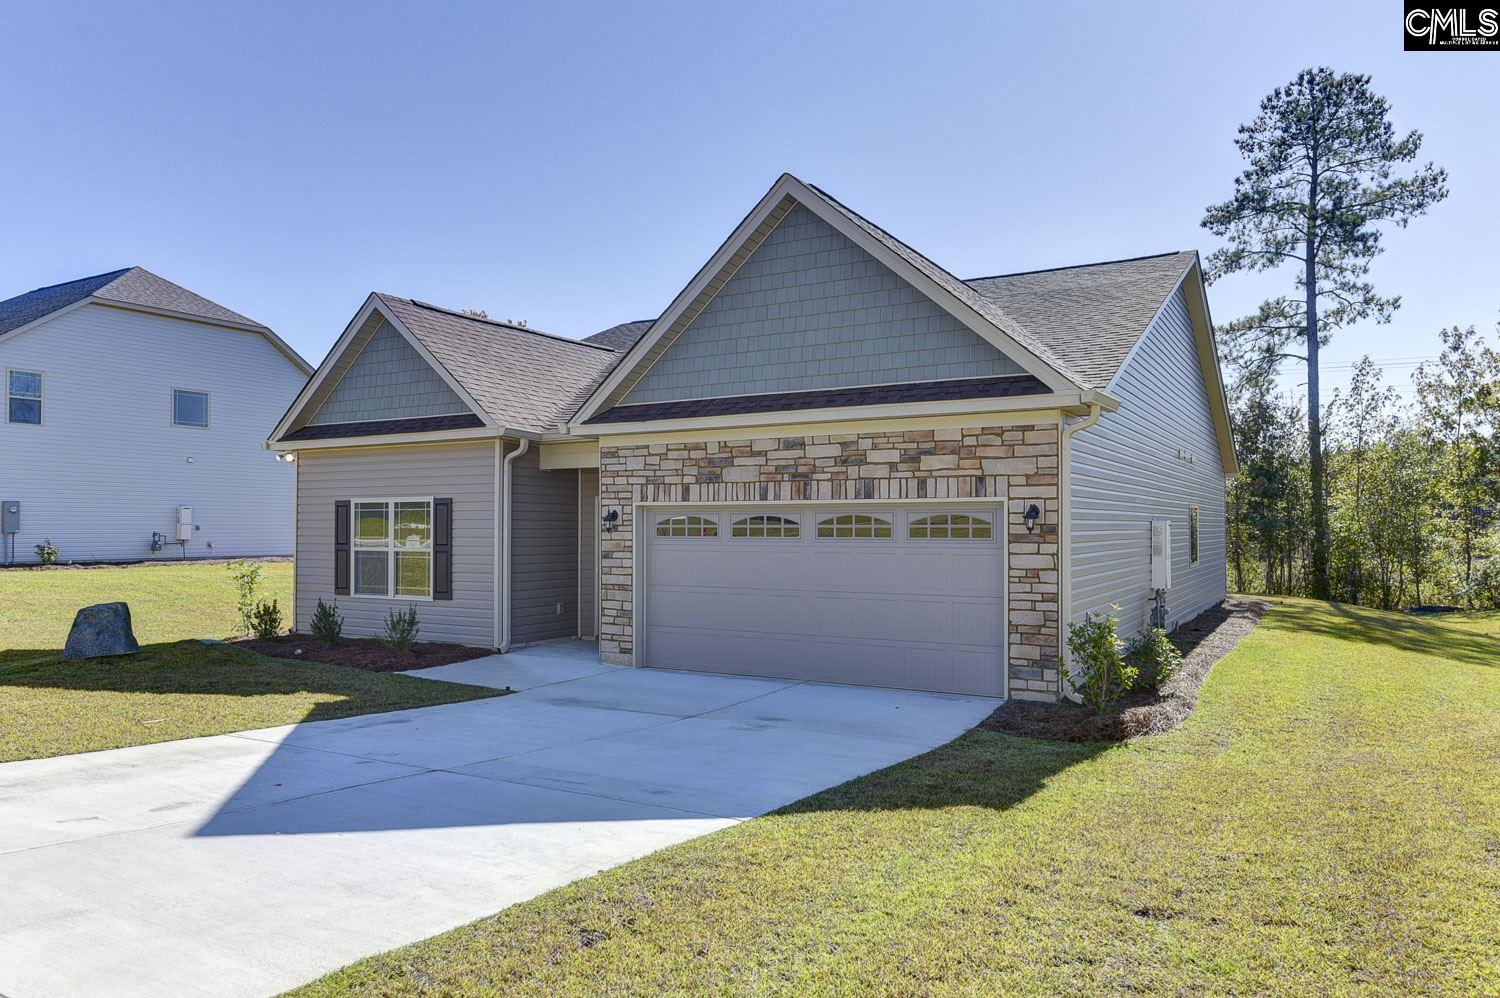 111 Tall Pines Gaston, SC 29053